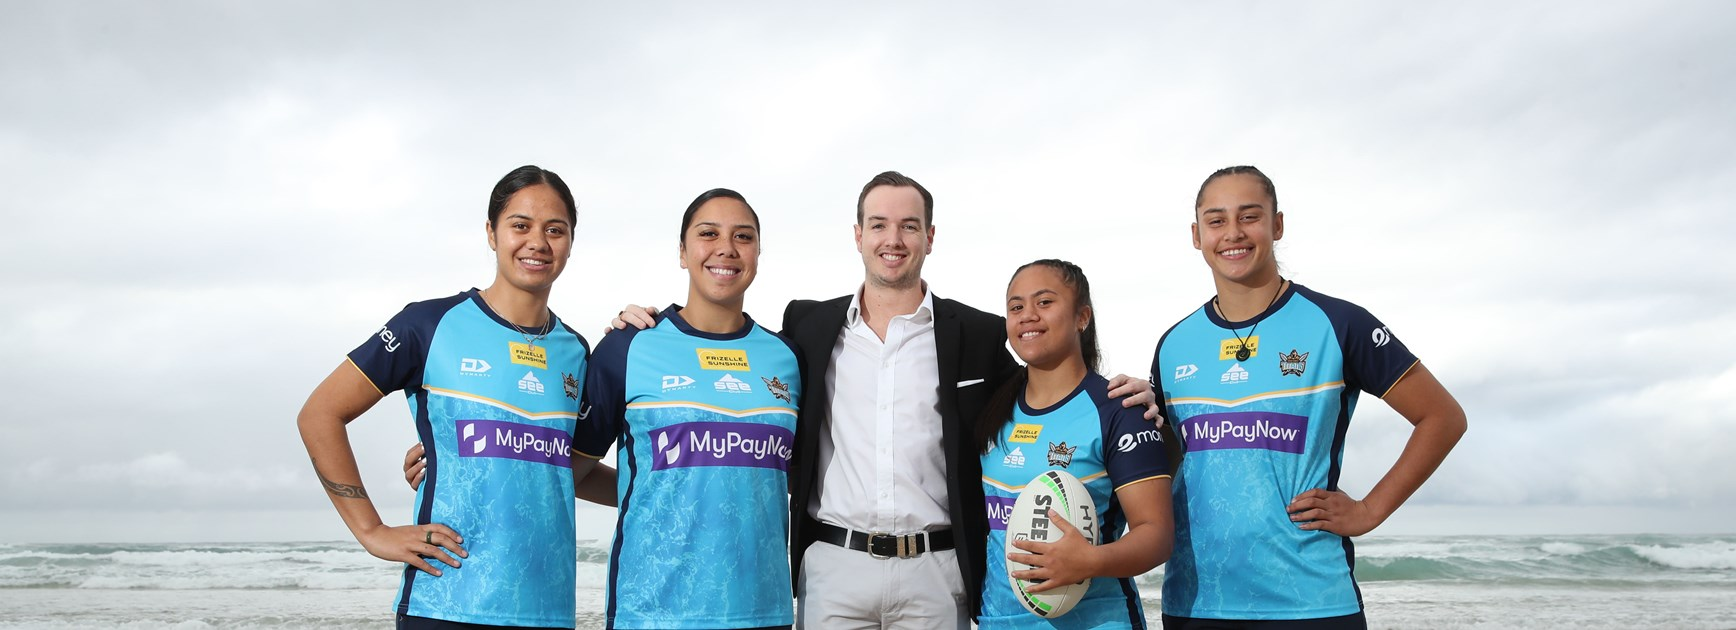 Destiny part of Titans NRLW future as signings unveiled